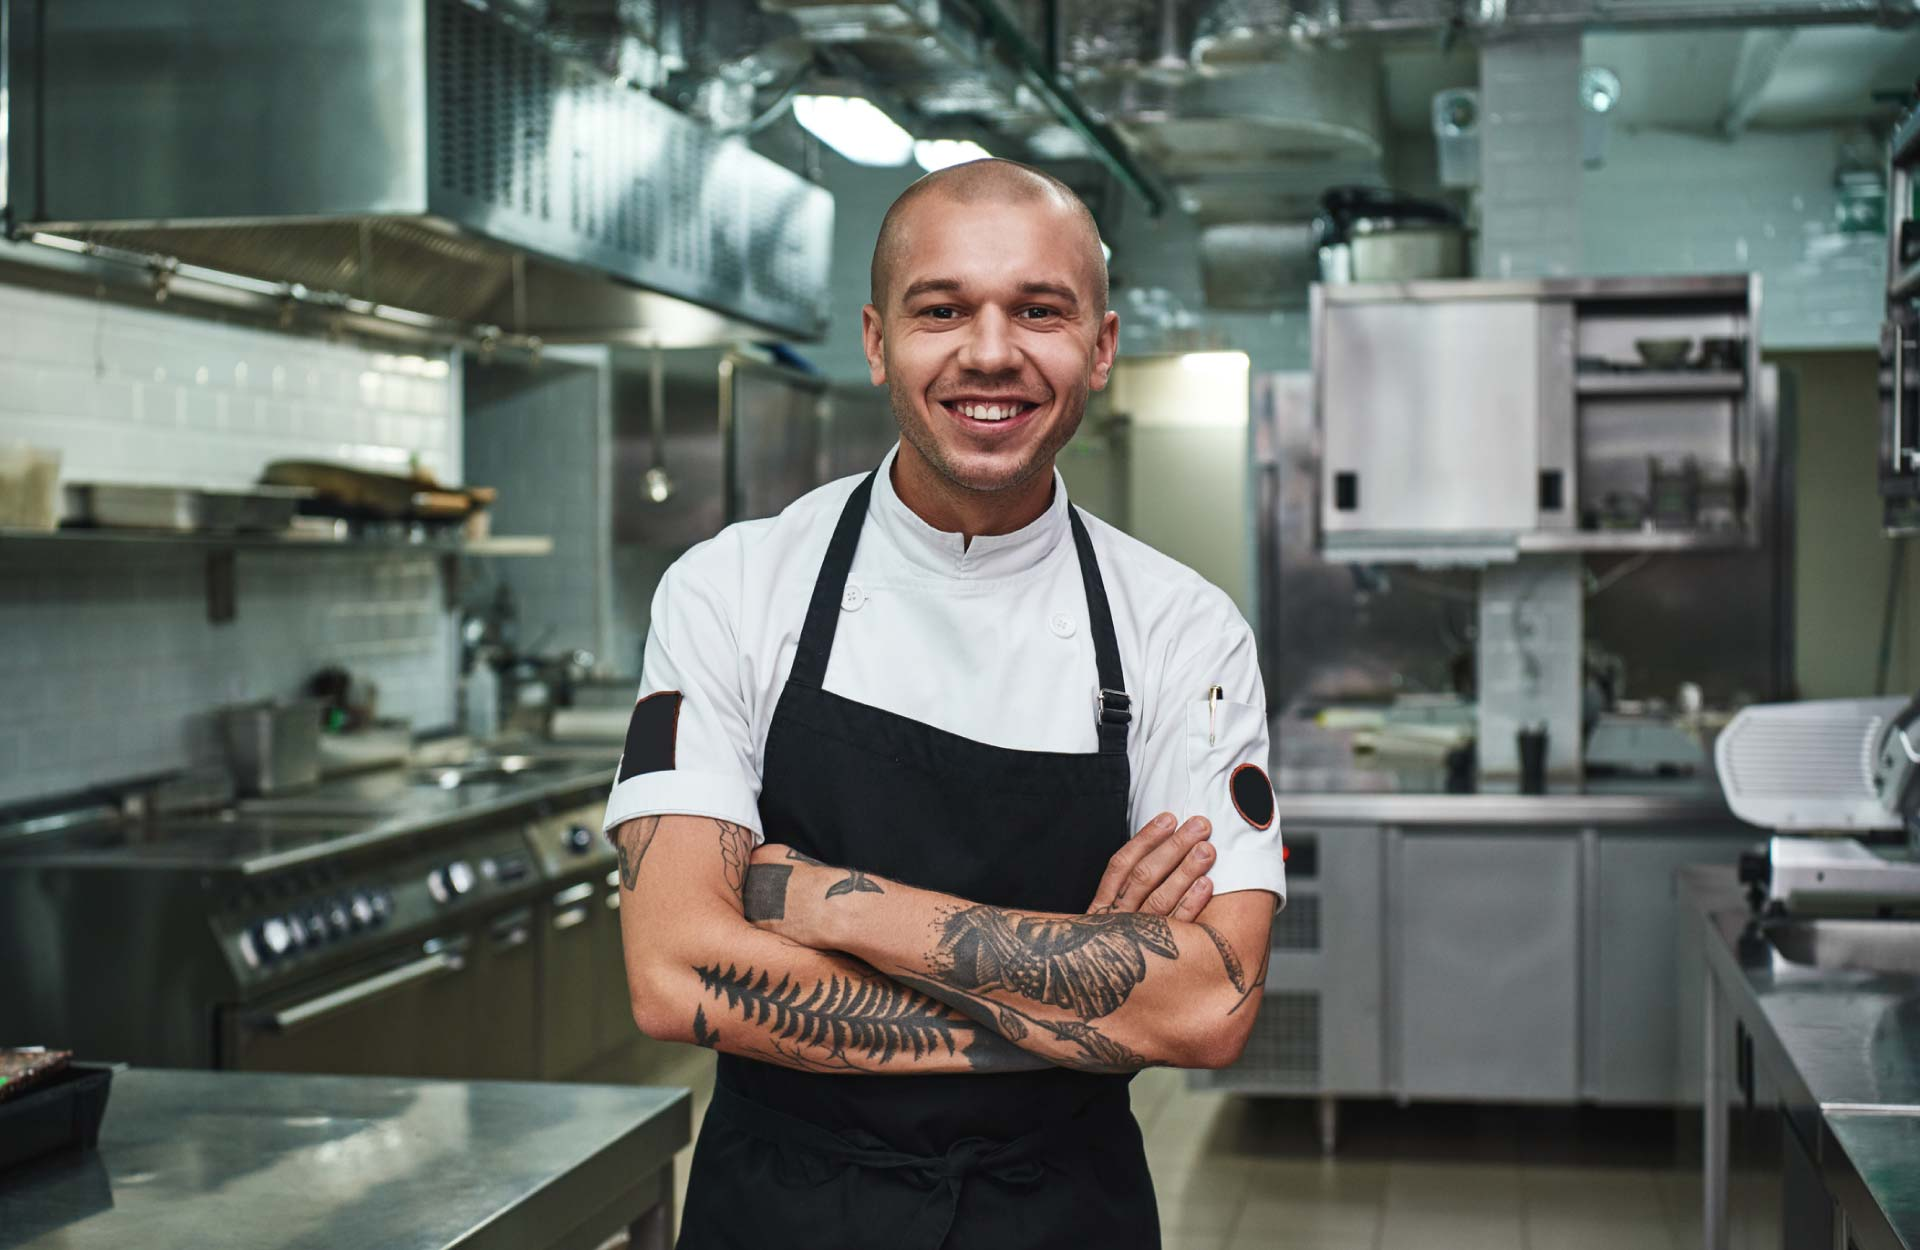 Cheerful young chef in apron keeping tattooed arms crossed and smiling while standing in a restaurant kitchen